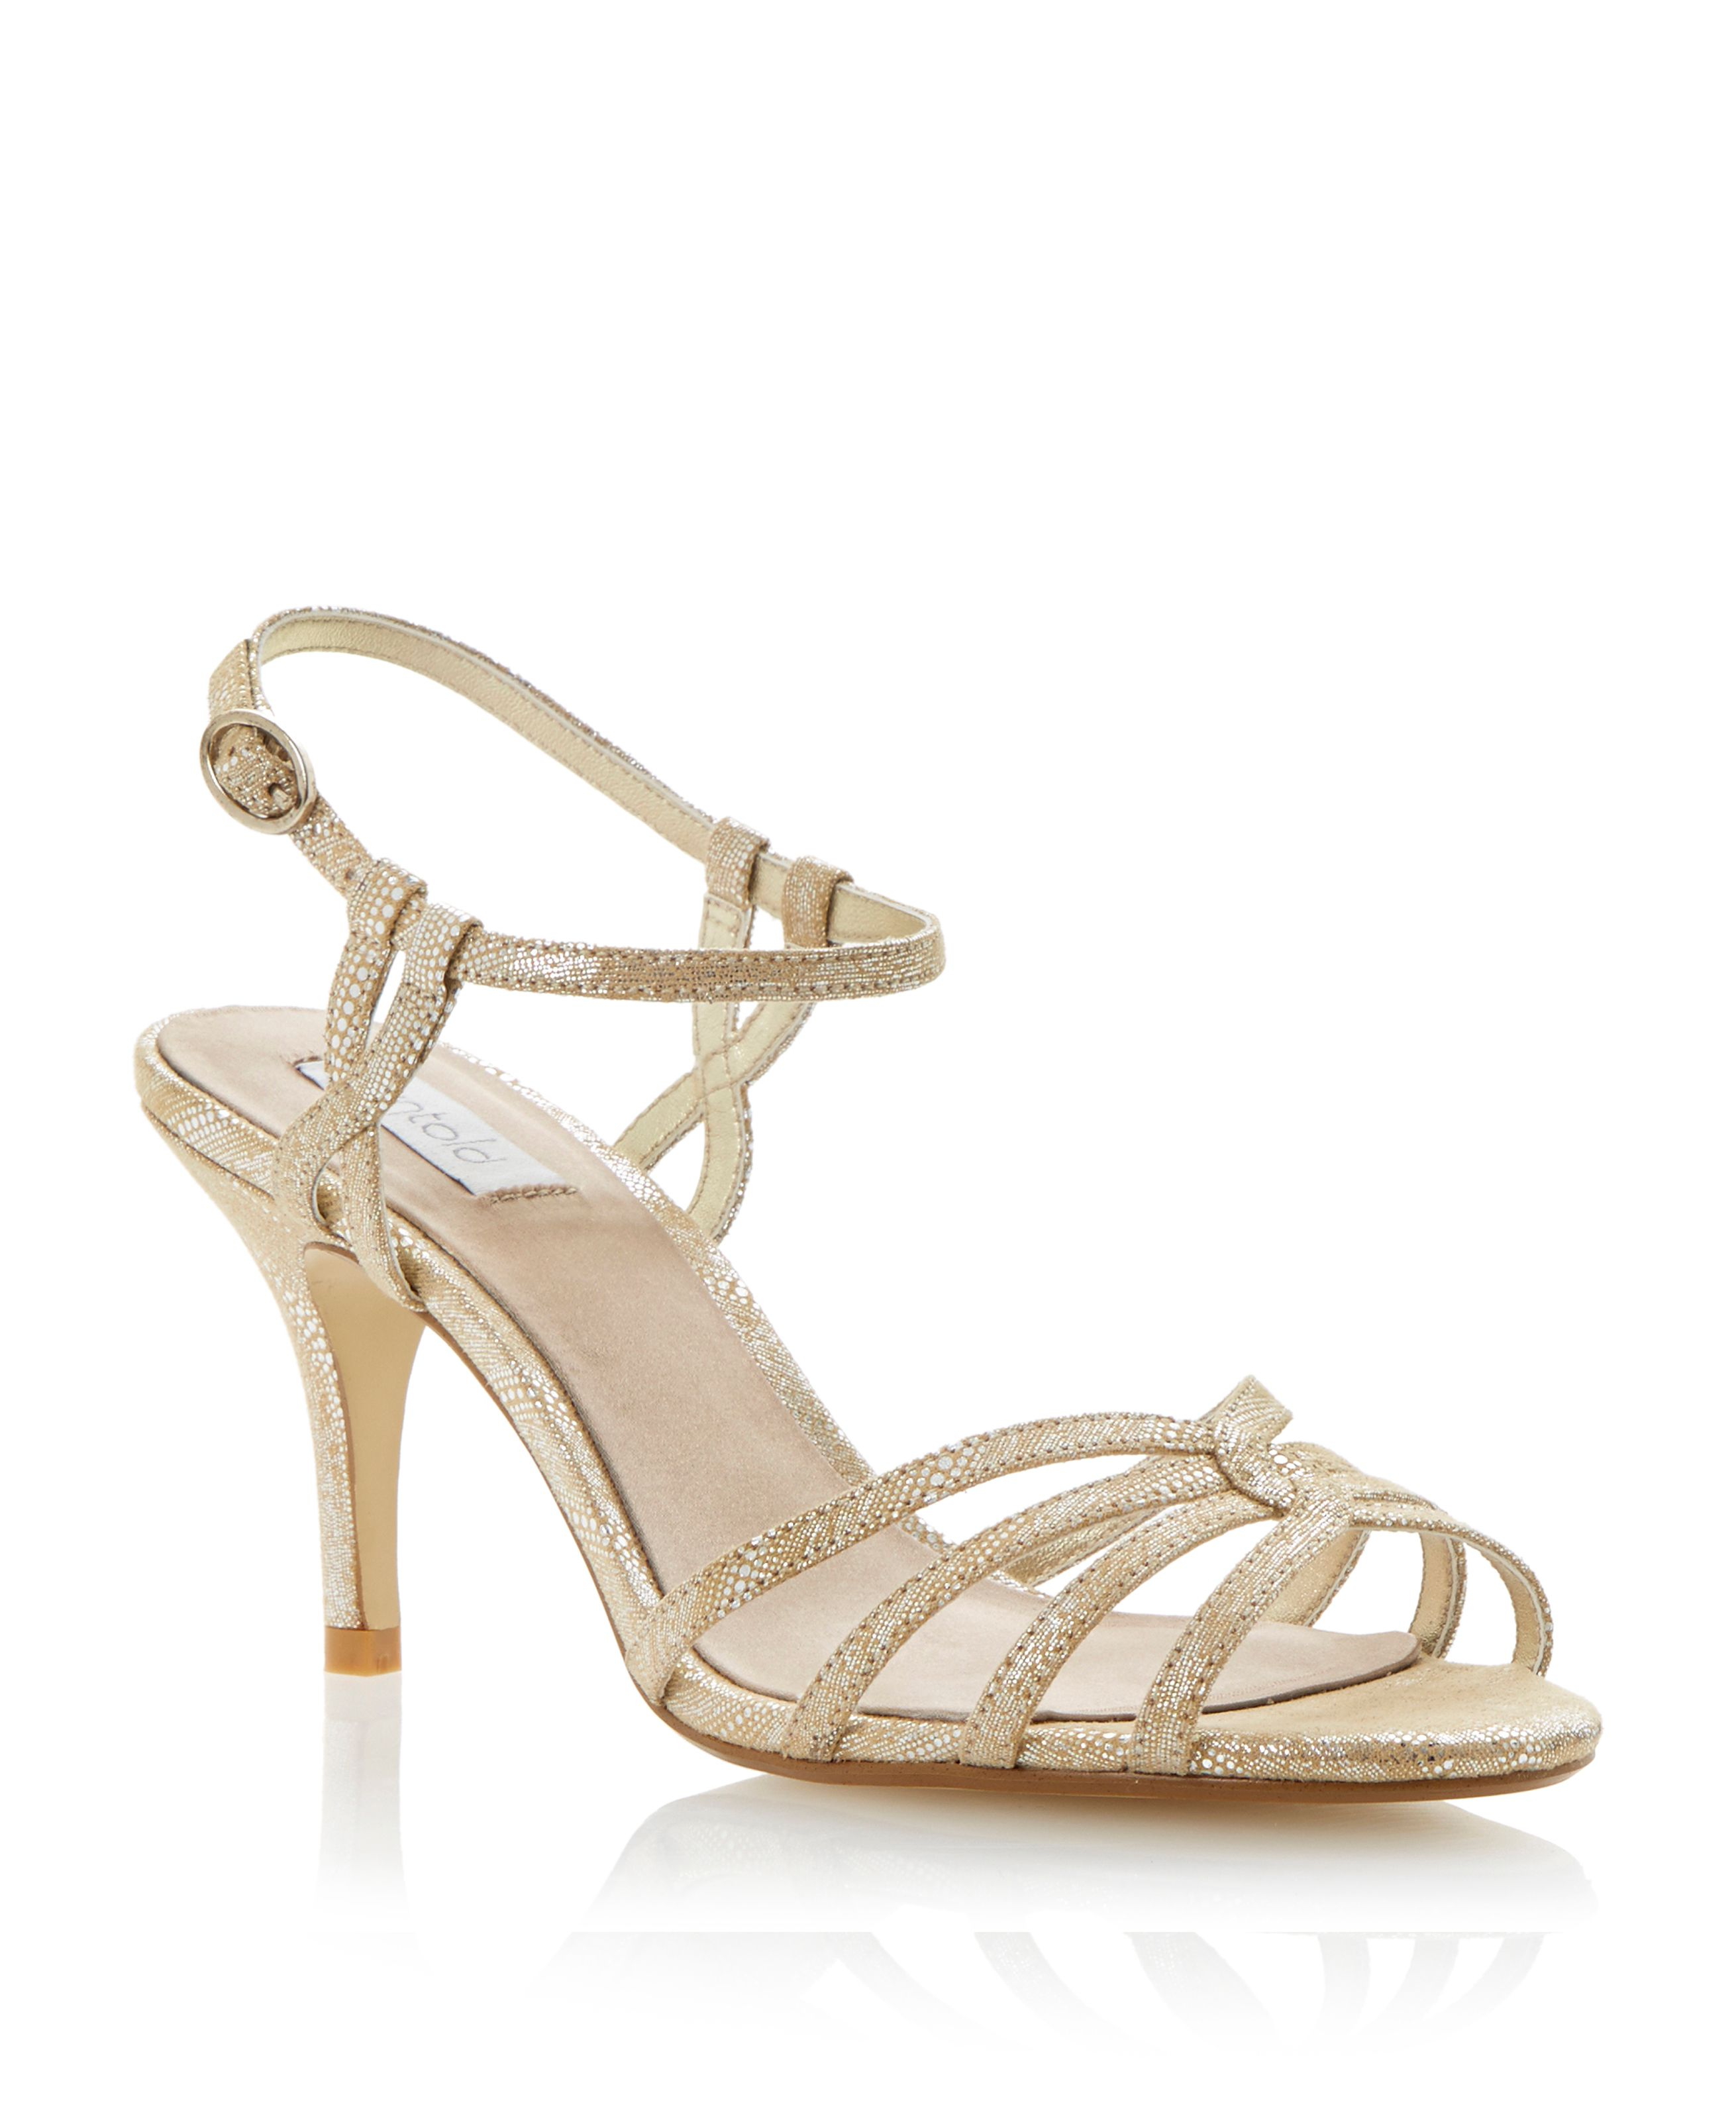 Heathers fabric strappy stiletto sandals